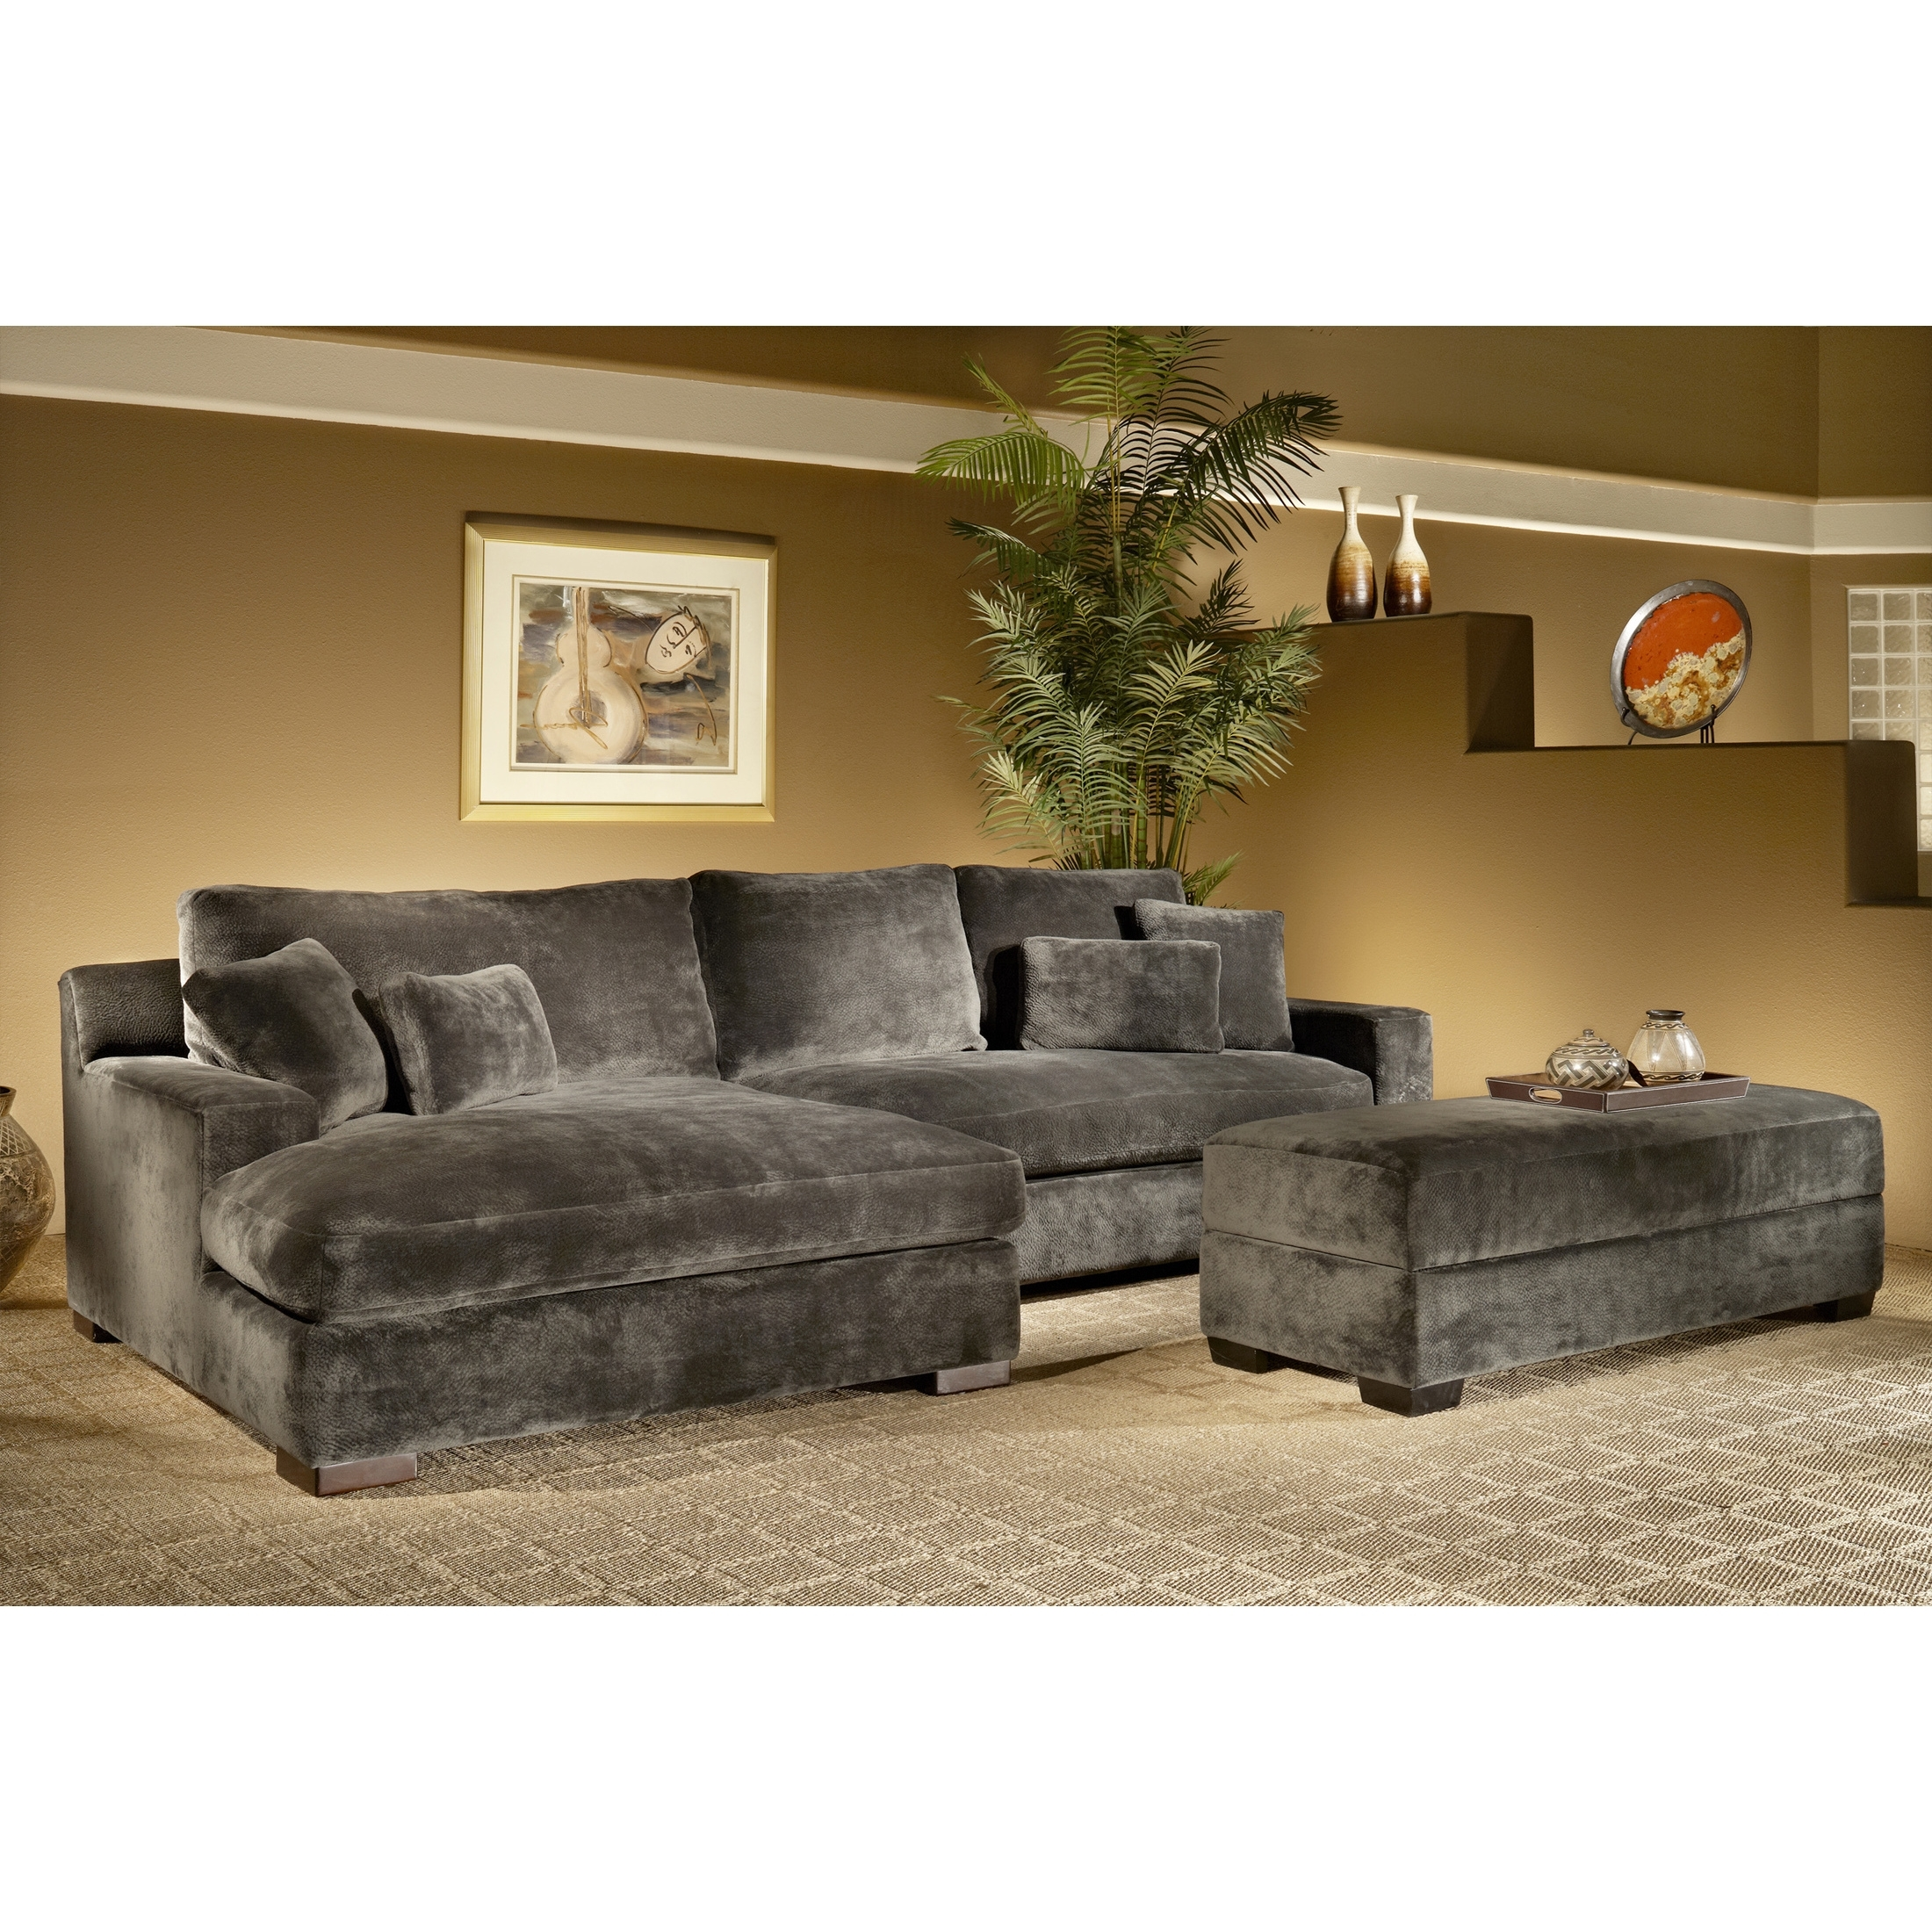 Newest The Casual Contemporary Doris Two Piece Chaise Sectional Is With Ventura County Sectional Sofas (View 20 of 20)